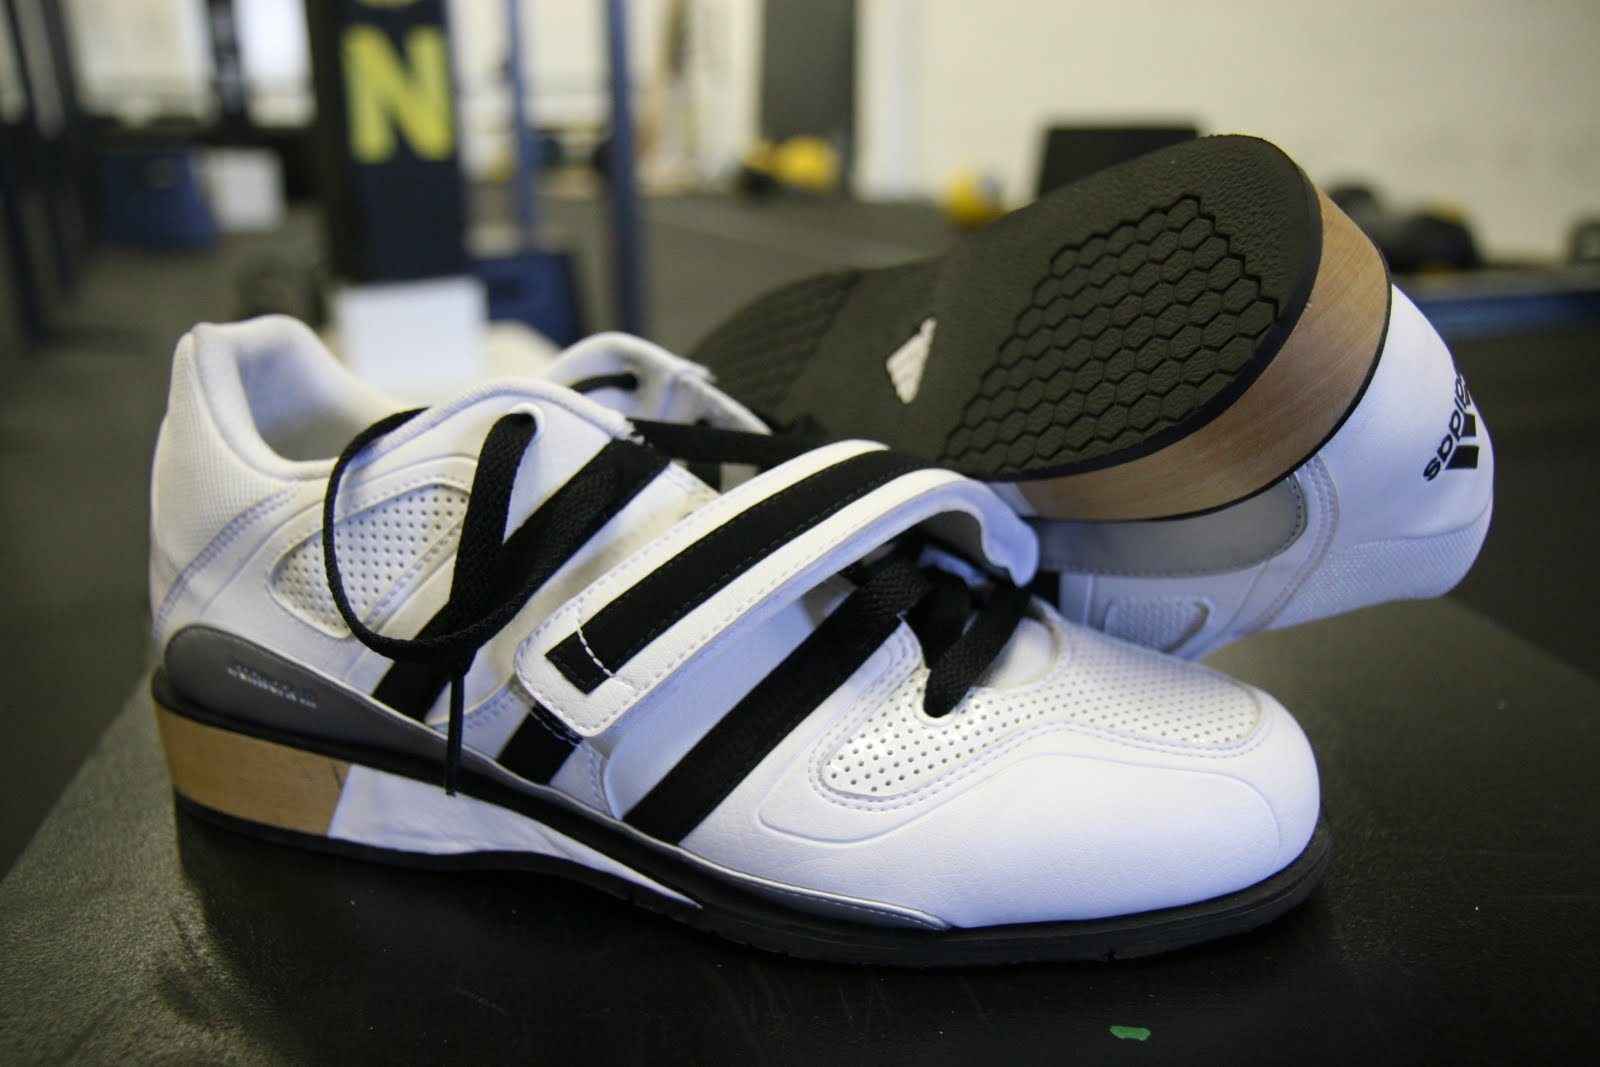 Adidas Oly Lifting Shoes